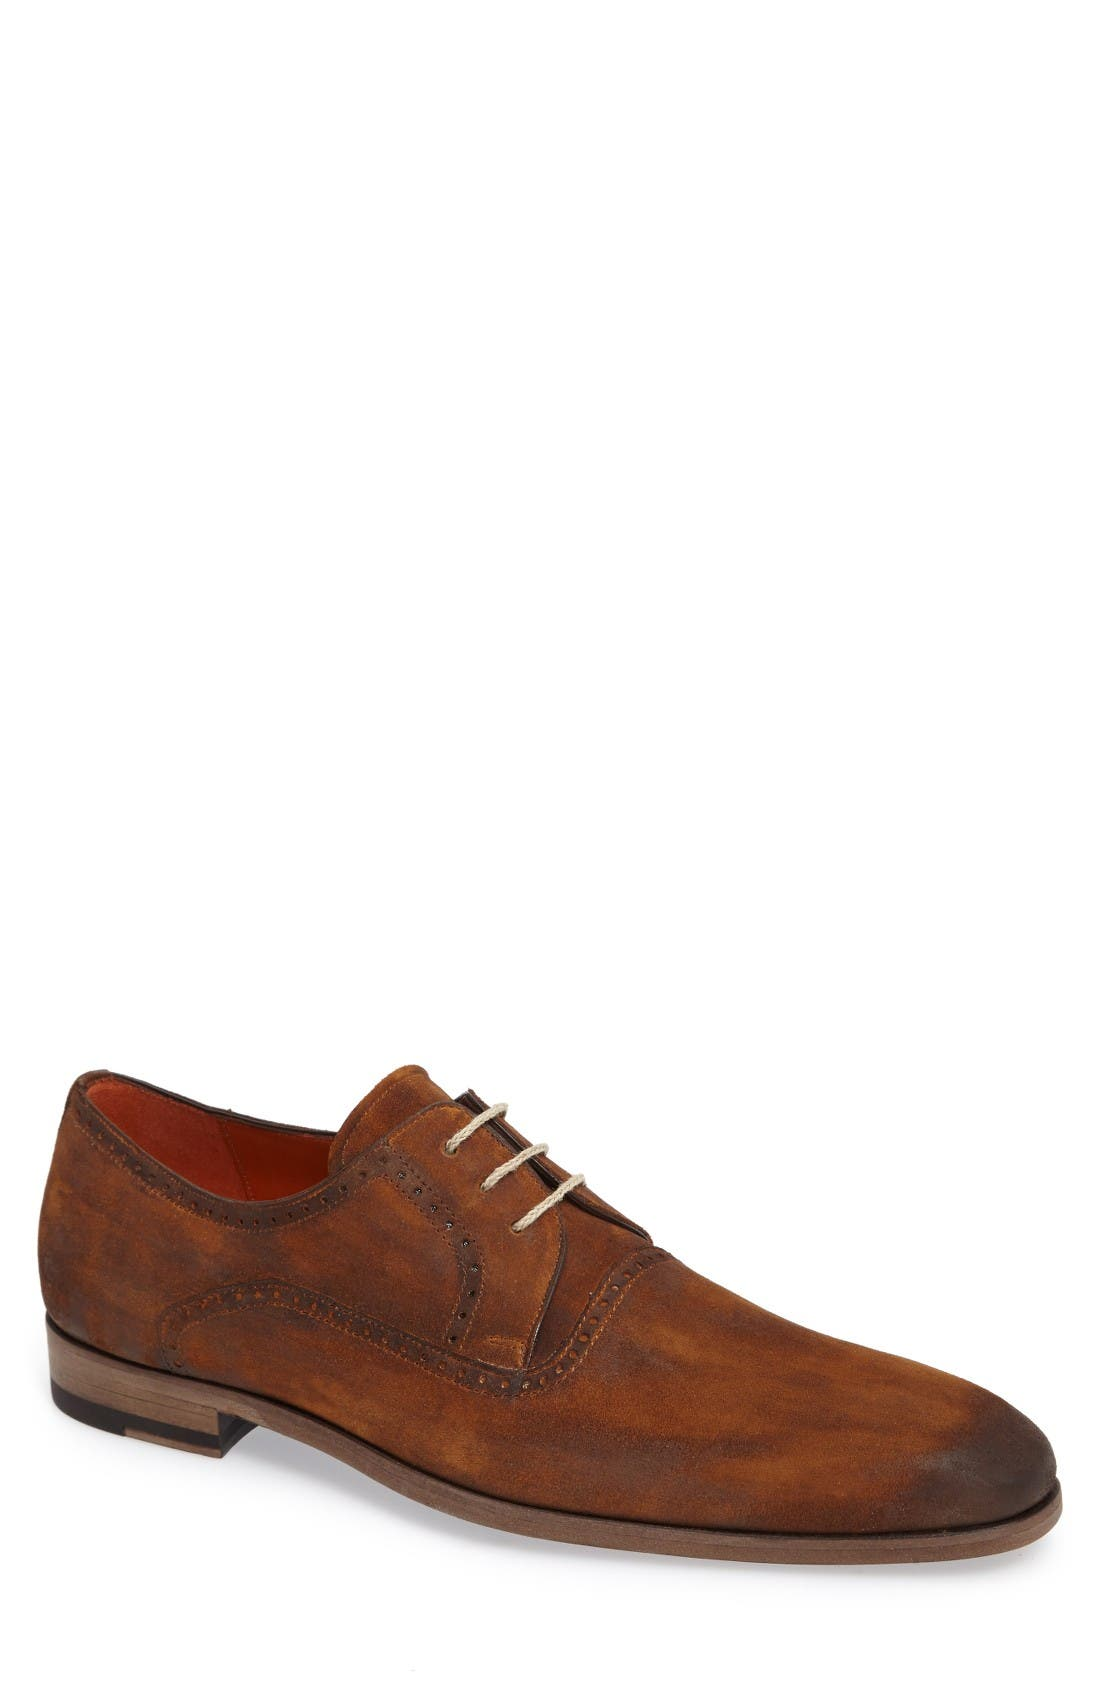 Euclid Plain Toe Derby,                             Main thumbnail 1, color,                             Tan Suede